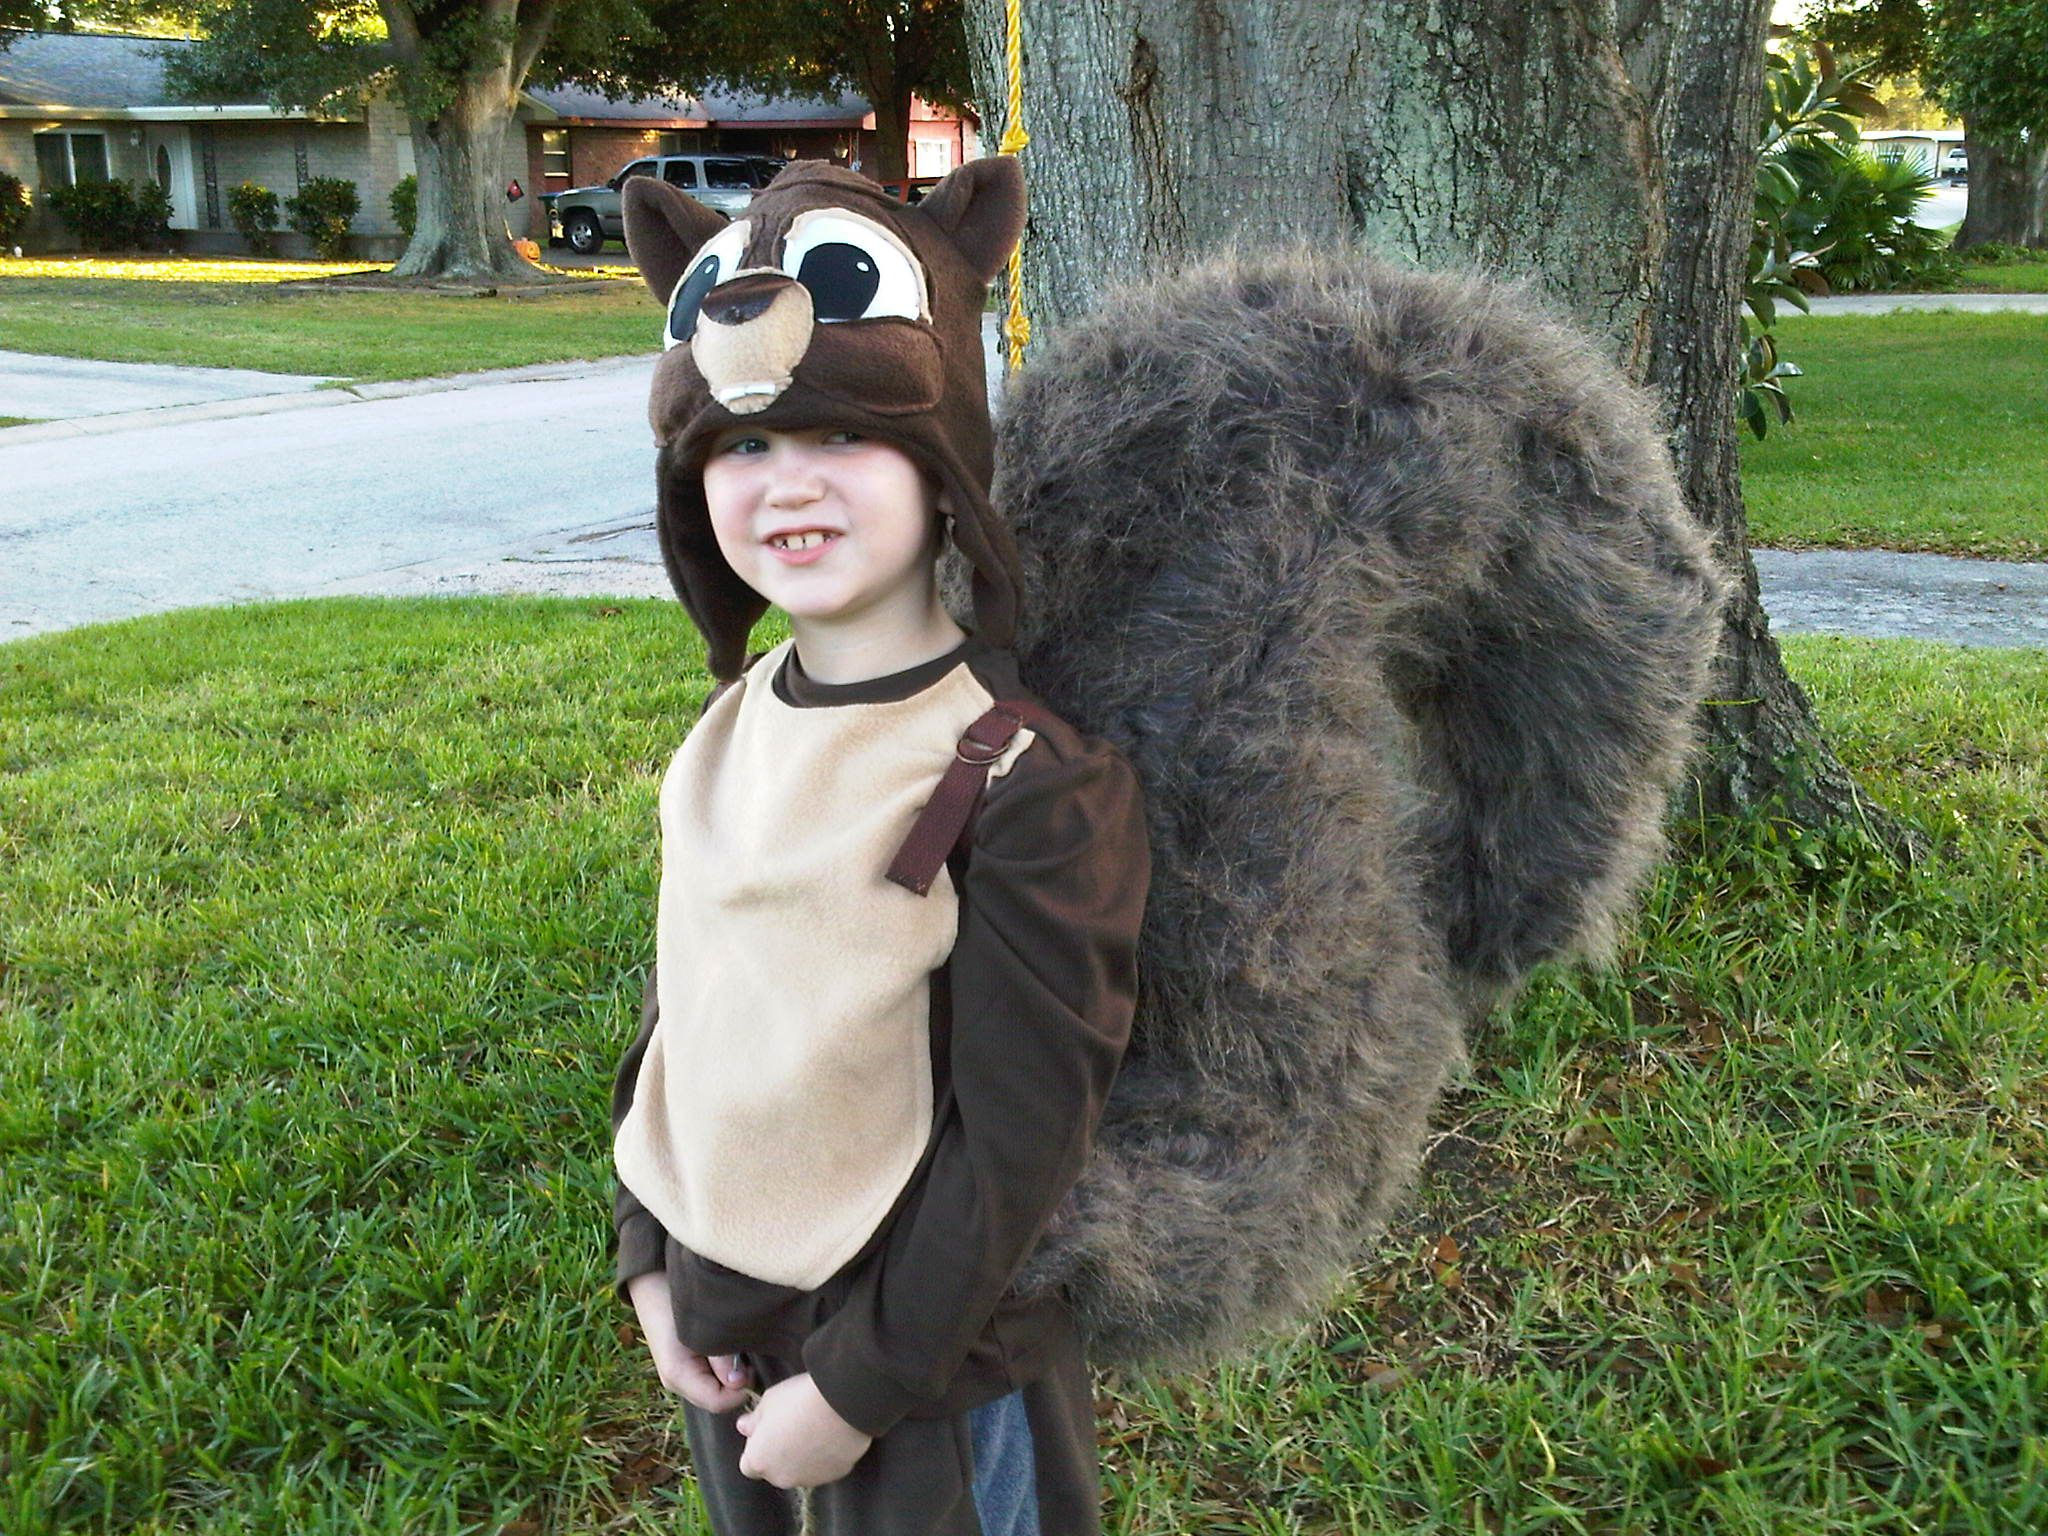 threads and snippets: how to make a squirrel costume | Halloween ...